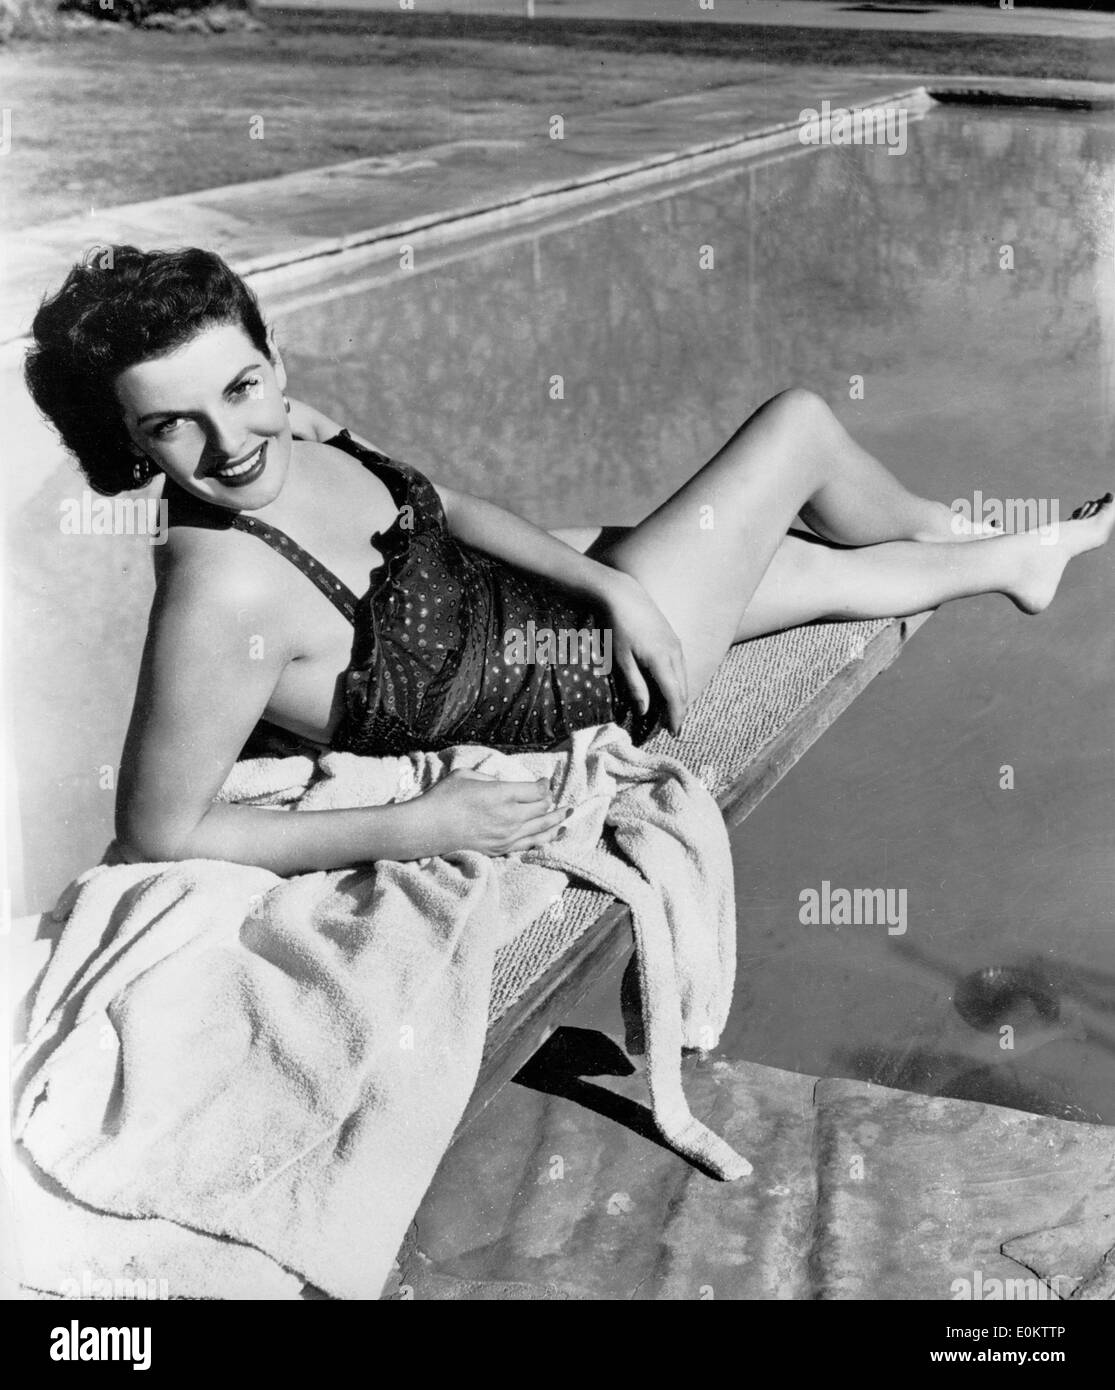 f246aef178ad3 Actress Jane Russell laying on the diving board by her pool - Stock Image